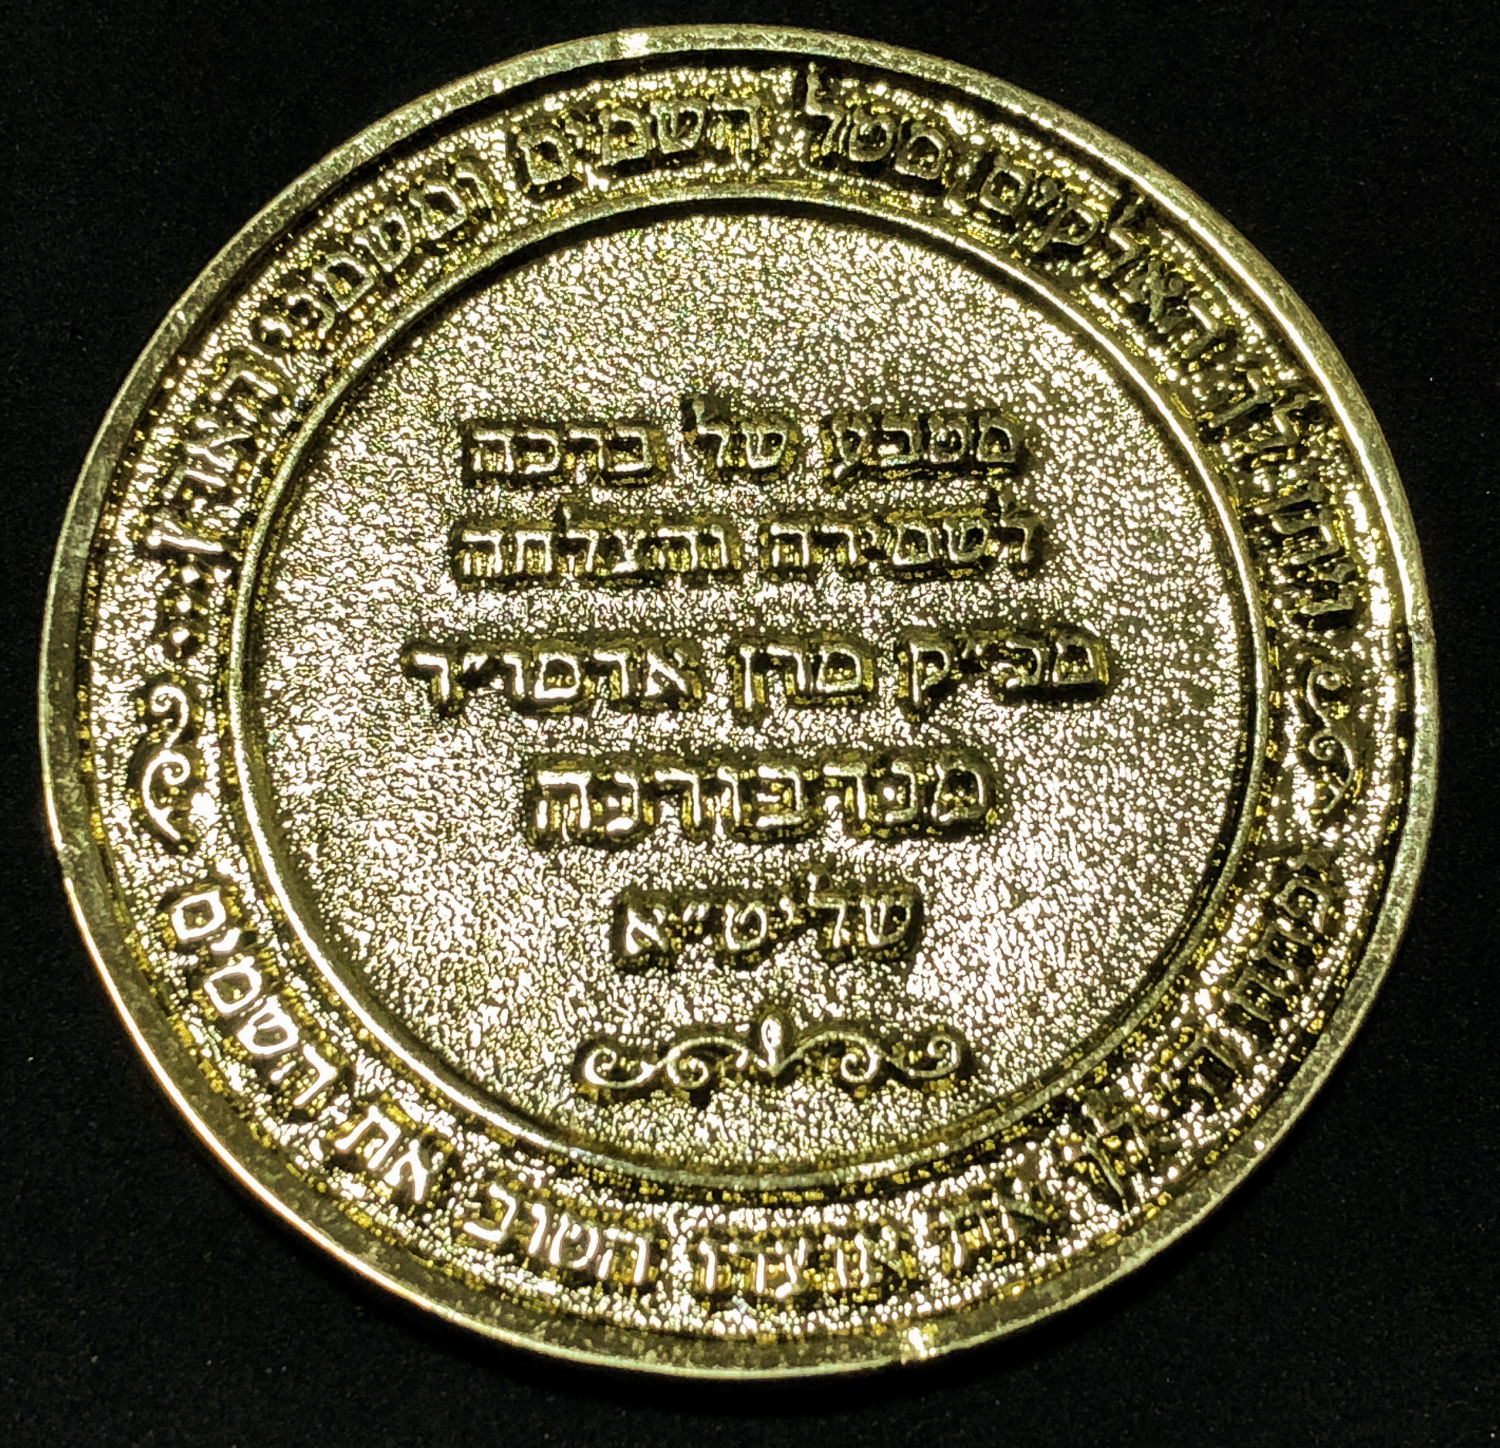 Lot 72 - Medals, Tokens.  -  yigal avrahamy Auction 03 - Coins and Banknotes of Israel and Palestine, medals and tokens.